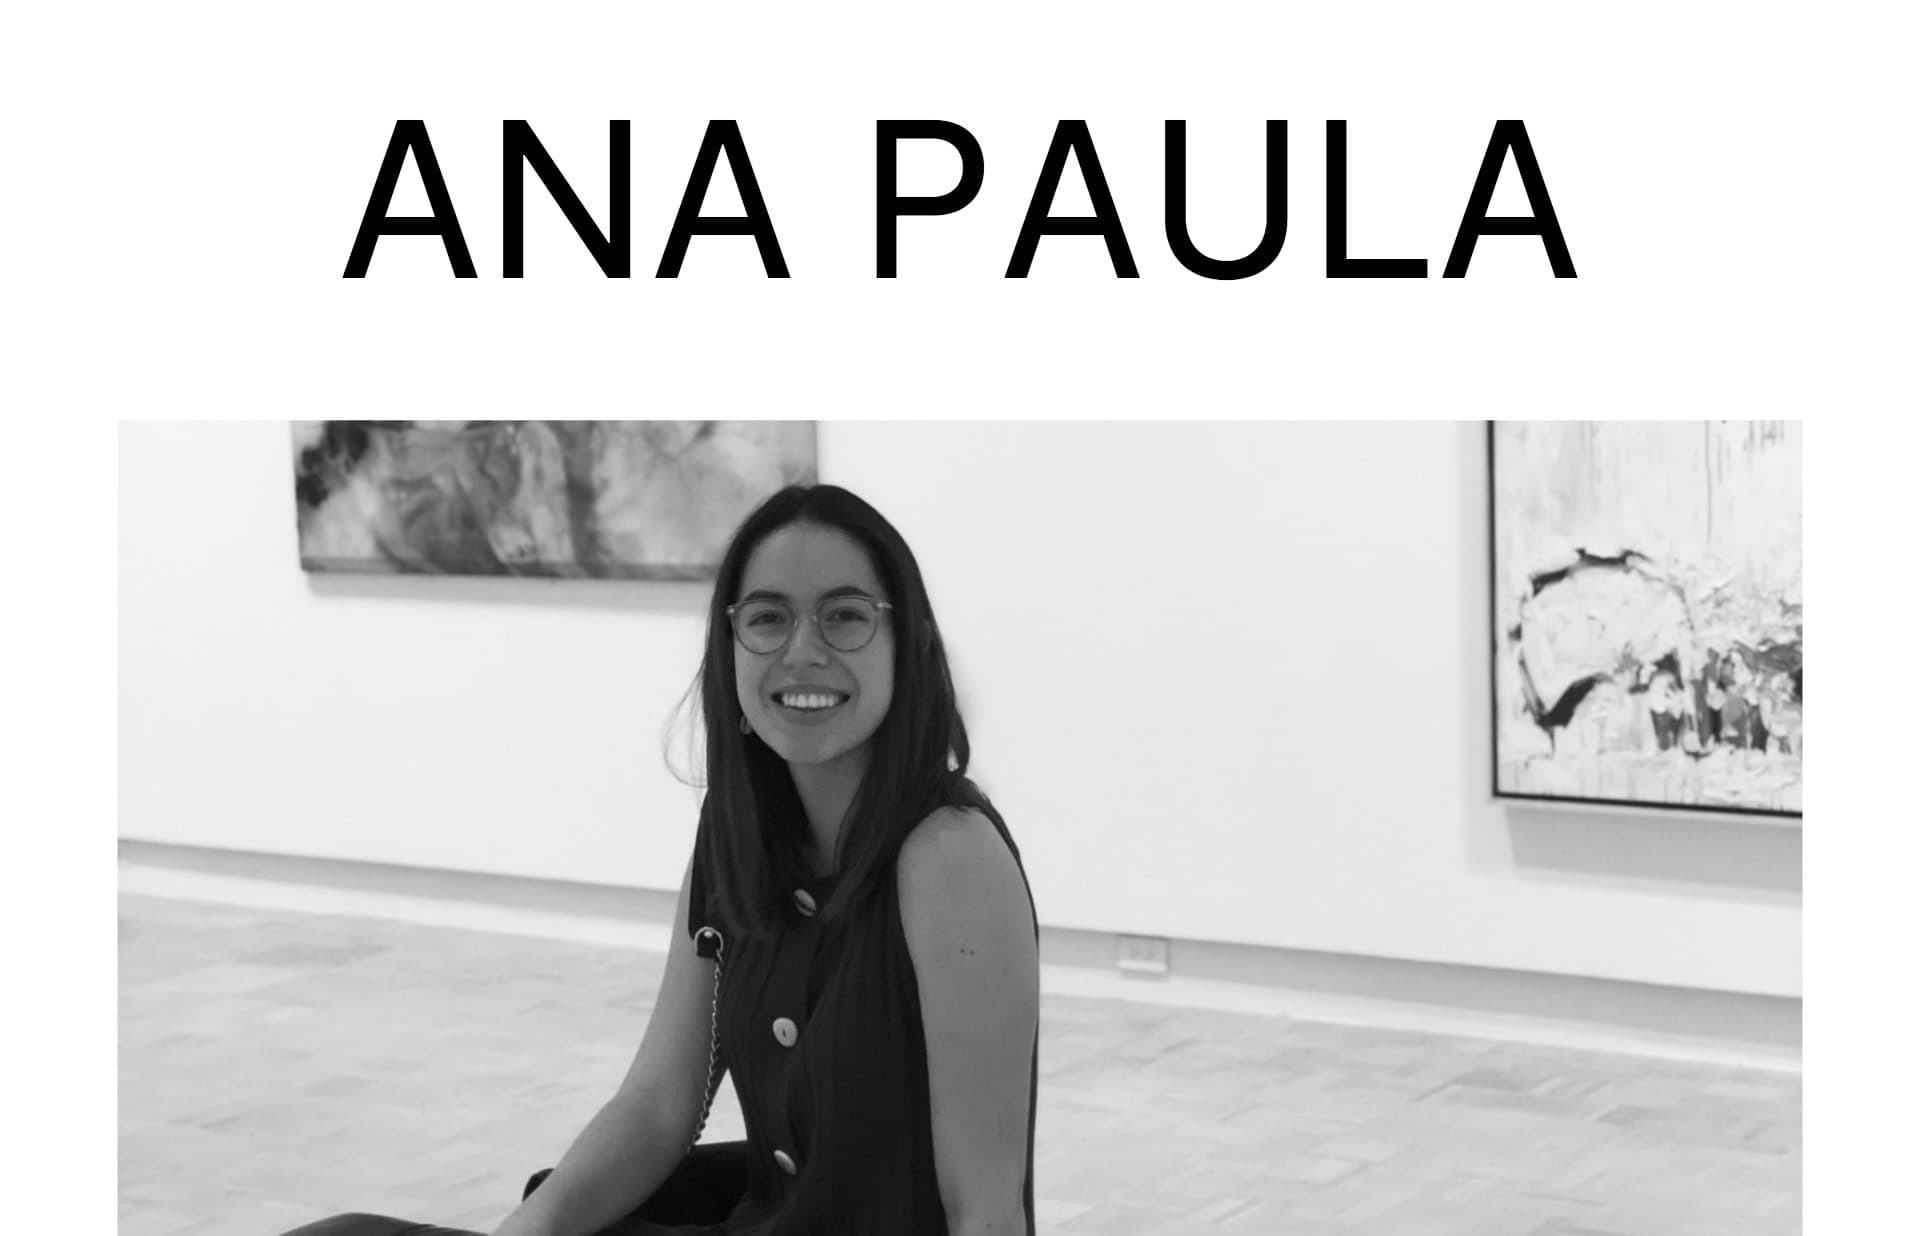 Screenshot of the website Ana Paula, featured on The Gallery, a curated collection of minimal websites